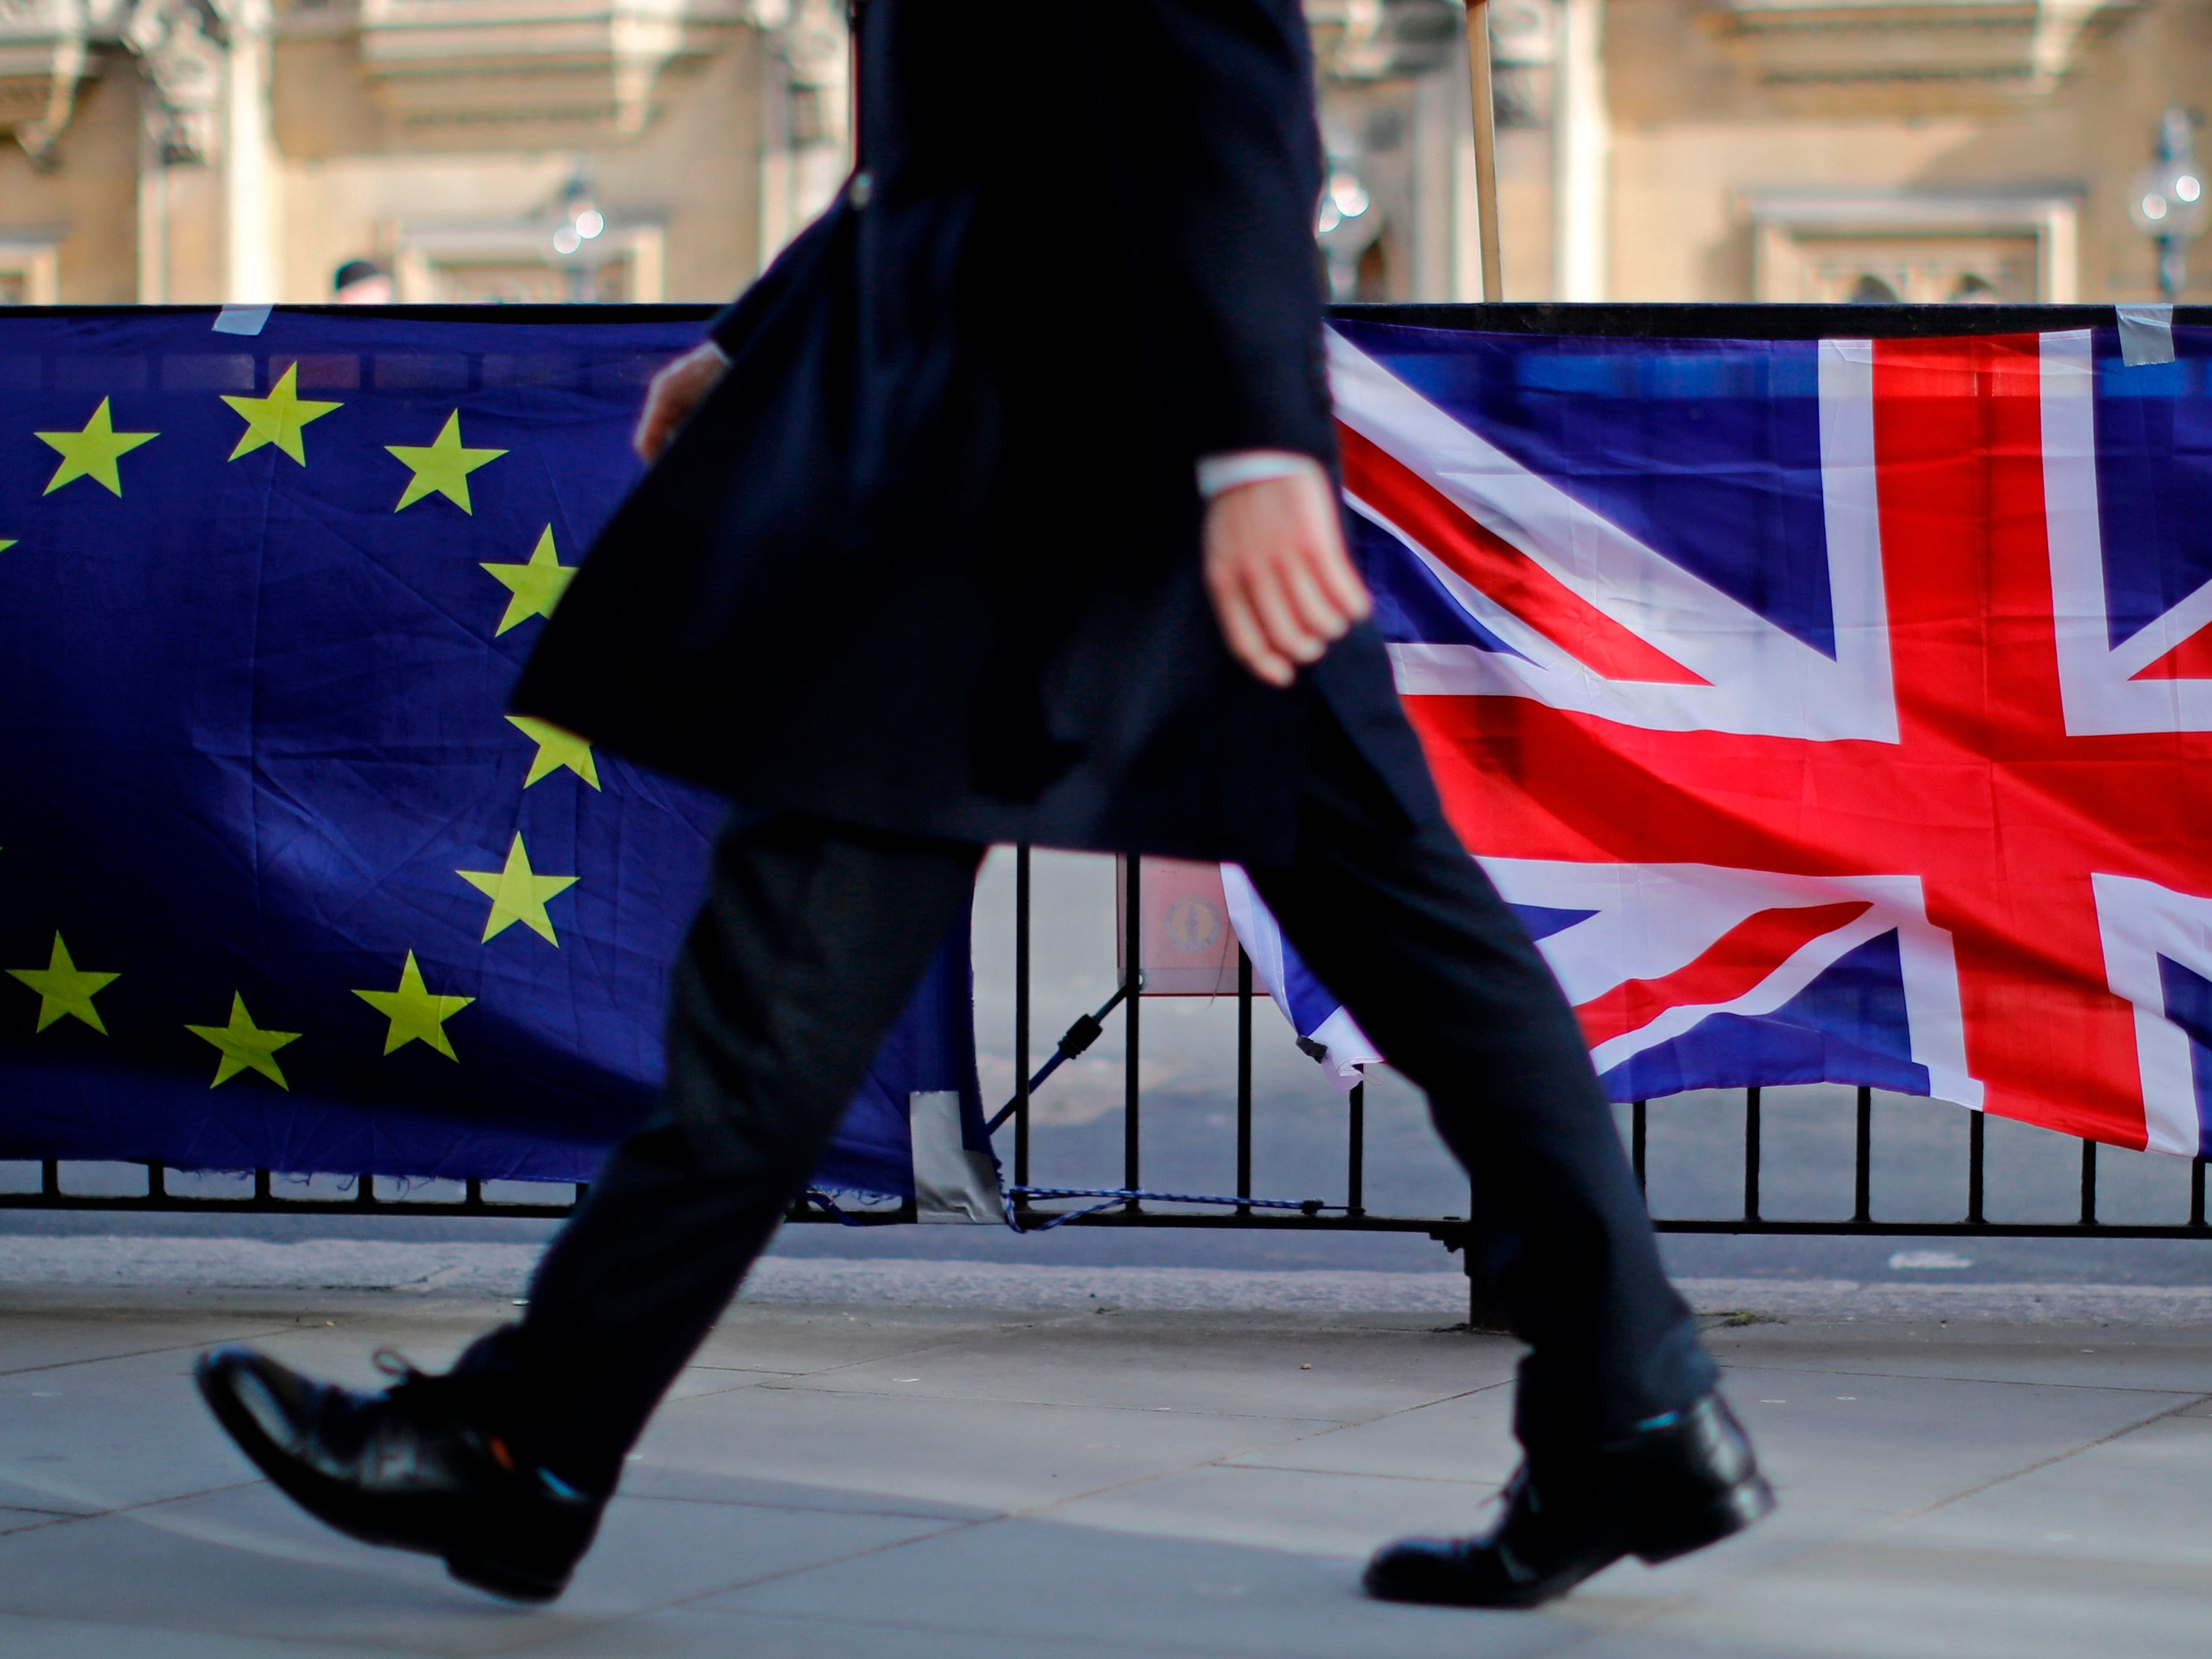 A man walks past the flags of anti-Brexit protesters outside the Houses of Parliament in London on Feb. 12, 2019. British Prime Minister Theresa May asked MPs Tuesday to give her more time for talks with the European Union on renegotiating the Brexit deal, just weeks before the scheduled March 29 departure date.